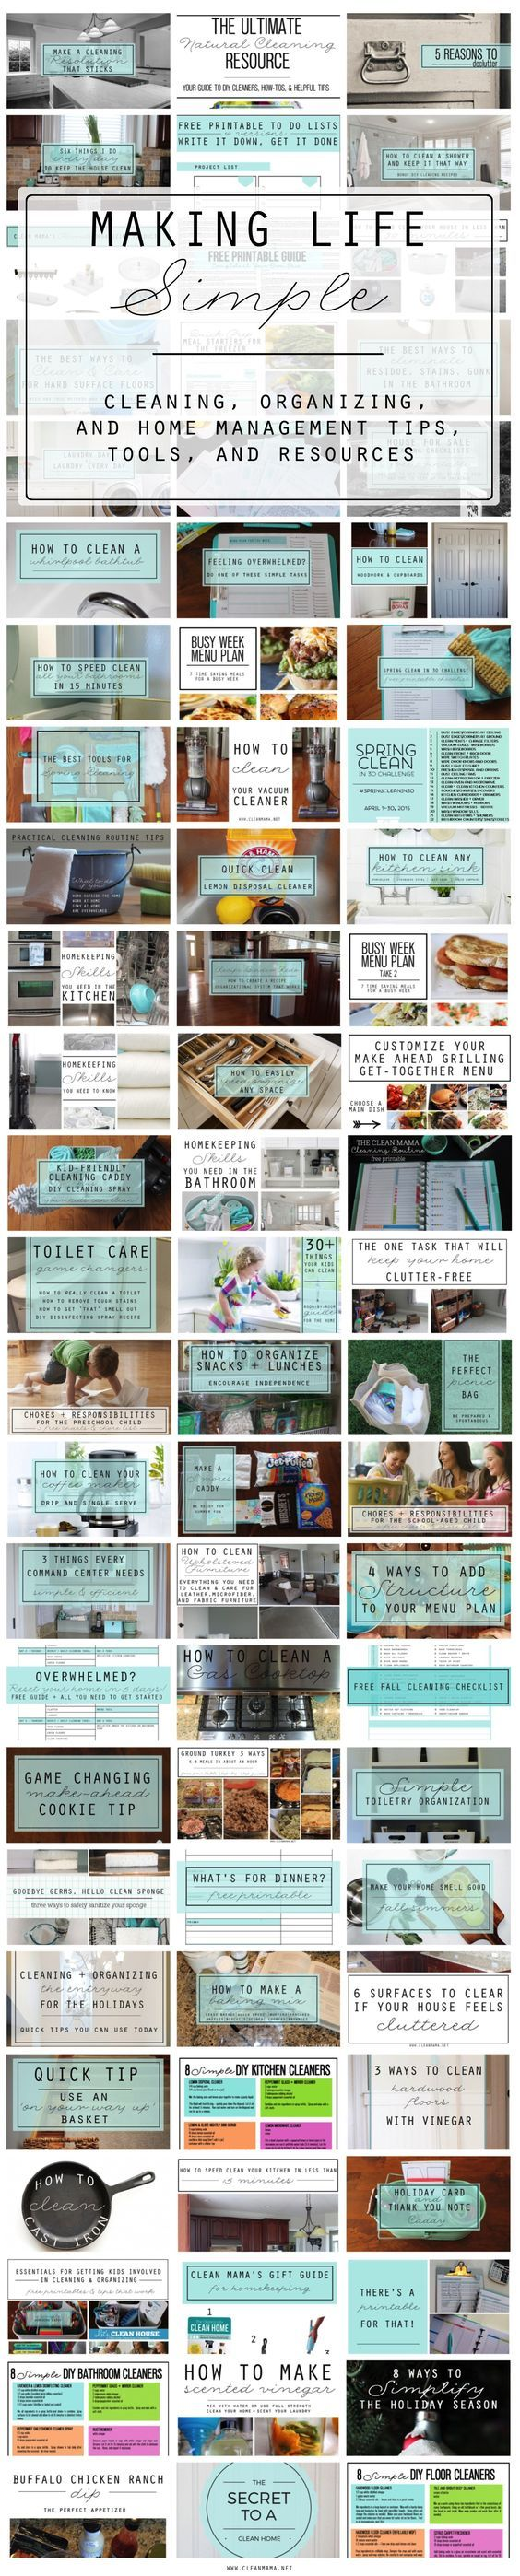 Cleaning, organizing and home management tips and tricks galore! Includes free printables, DIY recipes and a ton more.